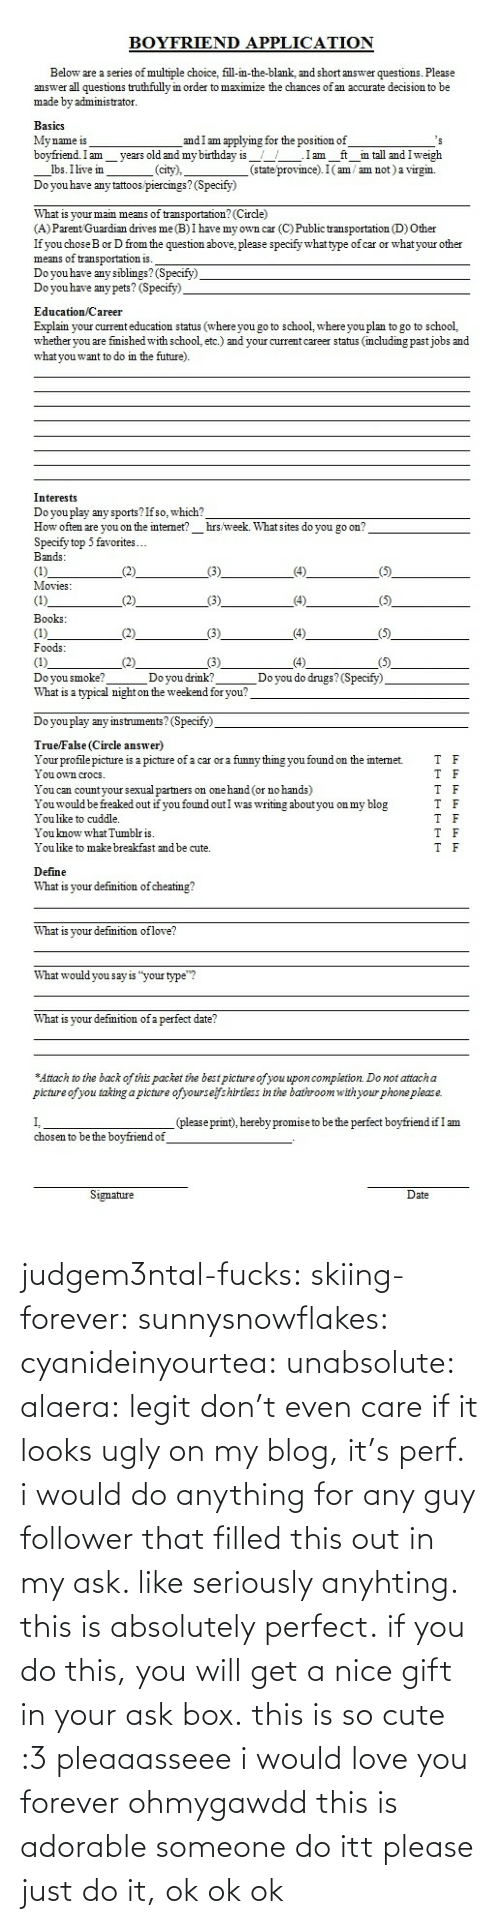 """Cuddle You: BOYFRIEND APPLICATION  Below are a series of multiple choice, fill-in-the-blank, and short answer questions. Please  answer all questions truthfully in order to maximize the chances of an accurate decision to be  made by administrator.  BasicS  My name is  bovfriend.Im vears old and my birthday is.Iam ft in tall and Iweigh  and I am applying for the position of  lbs. Ilivem_.  Do you have any tattoos piercings? (Specify)  (city),  (state province). I(am / am not) a virgin.  What is your main means of transportation? (Circle)  (A) Parent Guardian drives me(B)I have my own car (C) Public transportation (D) Other  If you choseB or D from the question above, please specify what type of car or whatyour other  means of transportation is.  Do you have any siblimgs? (Specify)  Do you have any pets? (Specify)  Education Career  Explain your current education status (where you go to school, where you plan to go to school,  whether you are fmished with school, etc.) and your current career status (mcluding pastjobs and  what you want to do in the future)  Interests  Do you play any sports?Ifso, which?  How often are you on the internet? hrs week. What sites do you go on  Specify top 5 favorites...  Bands  Movies   Books  Foods  Doyou smoke?  What is a typical night on the weekend for you?  Doyou drmk?  Do you do drugs?(Specify)  Do you play any imstruments? (Specify)  TrueFalse (Circle answer)  Your profile picture is a picture of a car or a funny thmg you found on the internet.  I ouown croCS  You can countyour sexual partners on one hand (or no hands)  Youwould be freaked out if you found outI was writing about you on my blog  You like to cuddle.  You know what Tumblris  You like to make breakfast and be cute.  T  F  T F  T F  Define  What is your defmition of cheating!?  What is vour defmition oflove?  What would you say is """"your type""""?  What is your defmition of a perfect date?  Attach to the back of this packet the best picture ofyou upon completion Do not att"""